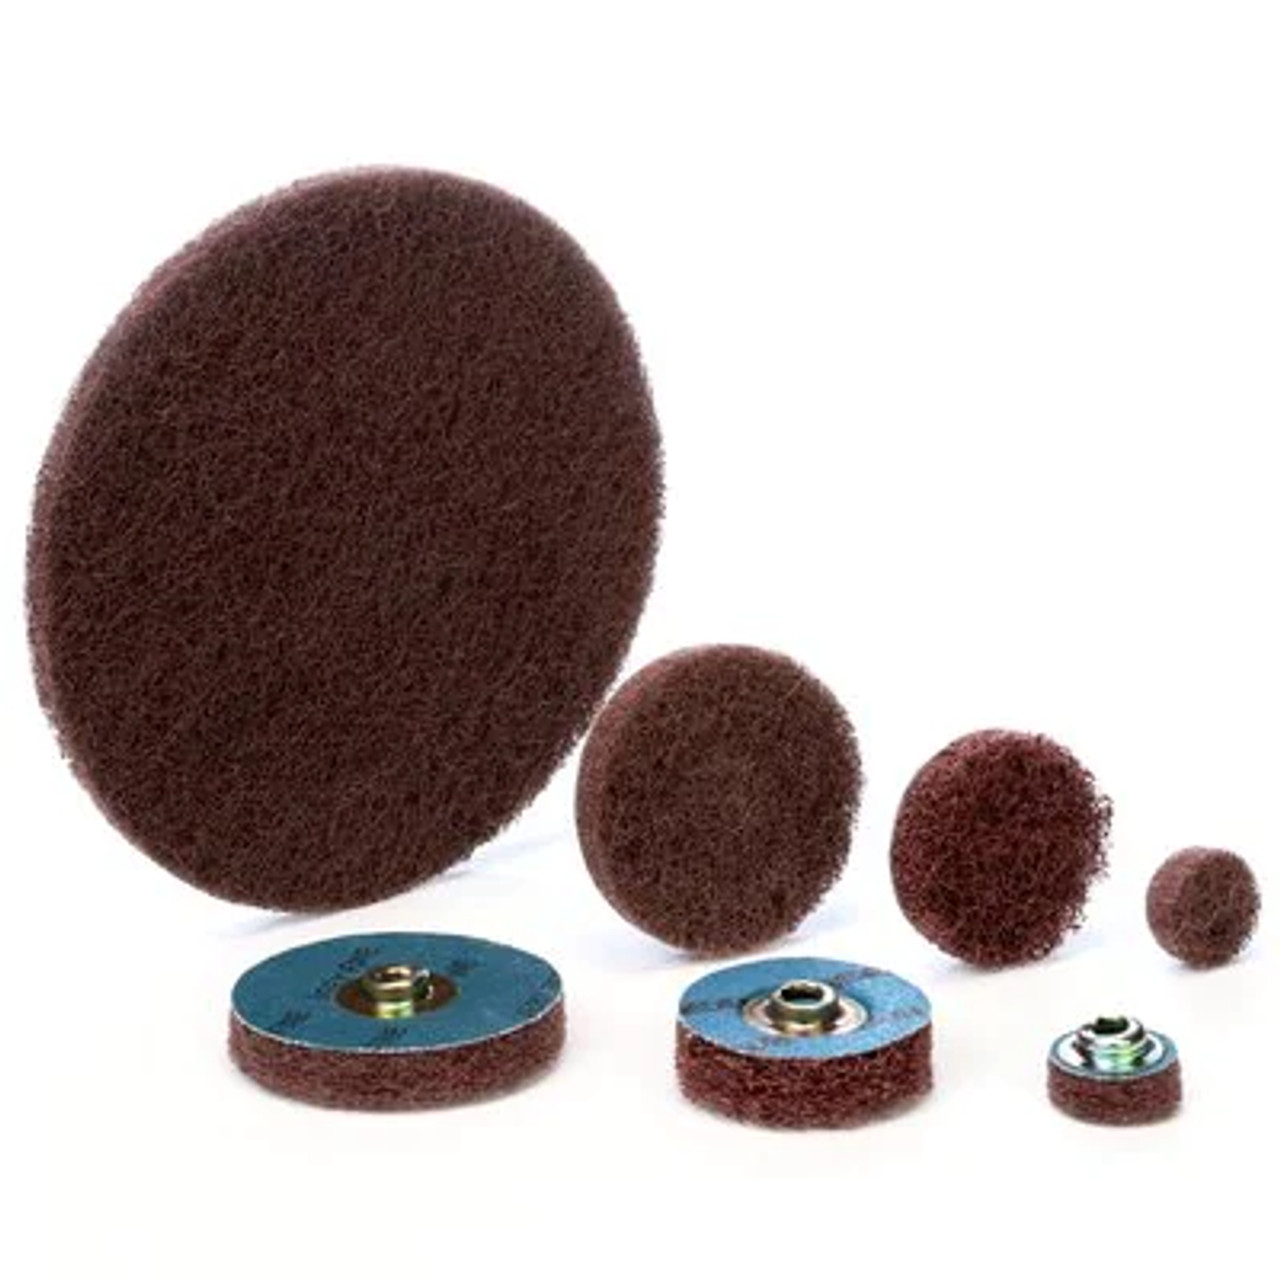 Standard Abrasives™ Buff and Blend HS Disc, 860706, 6 in x 1/2 in A CRS